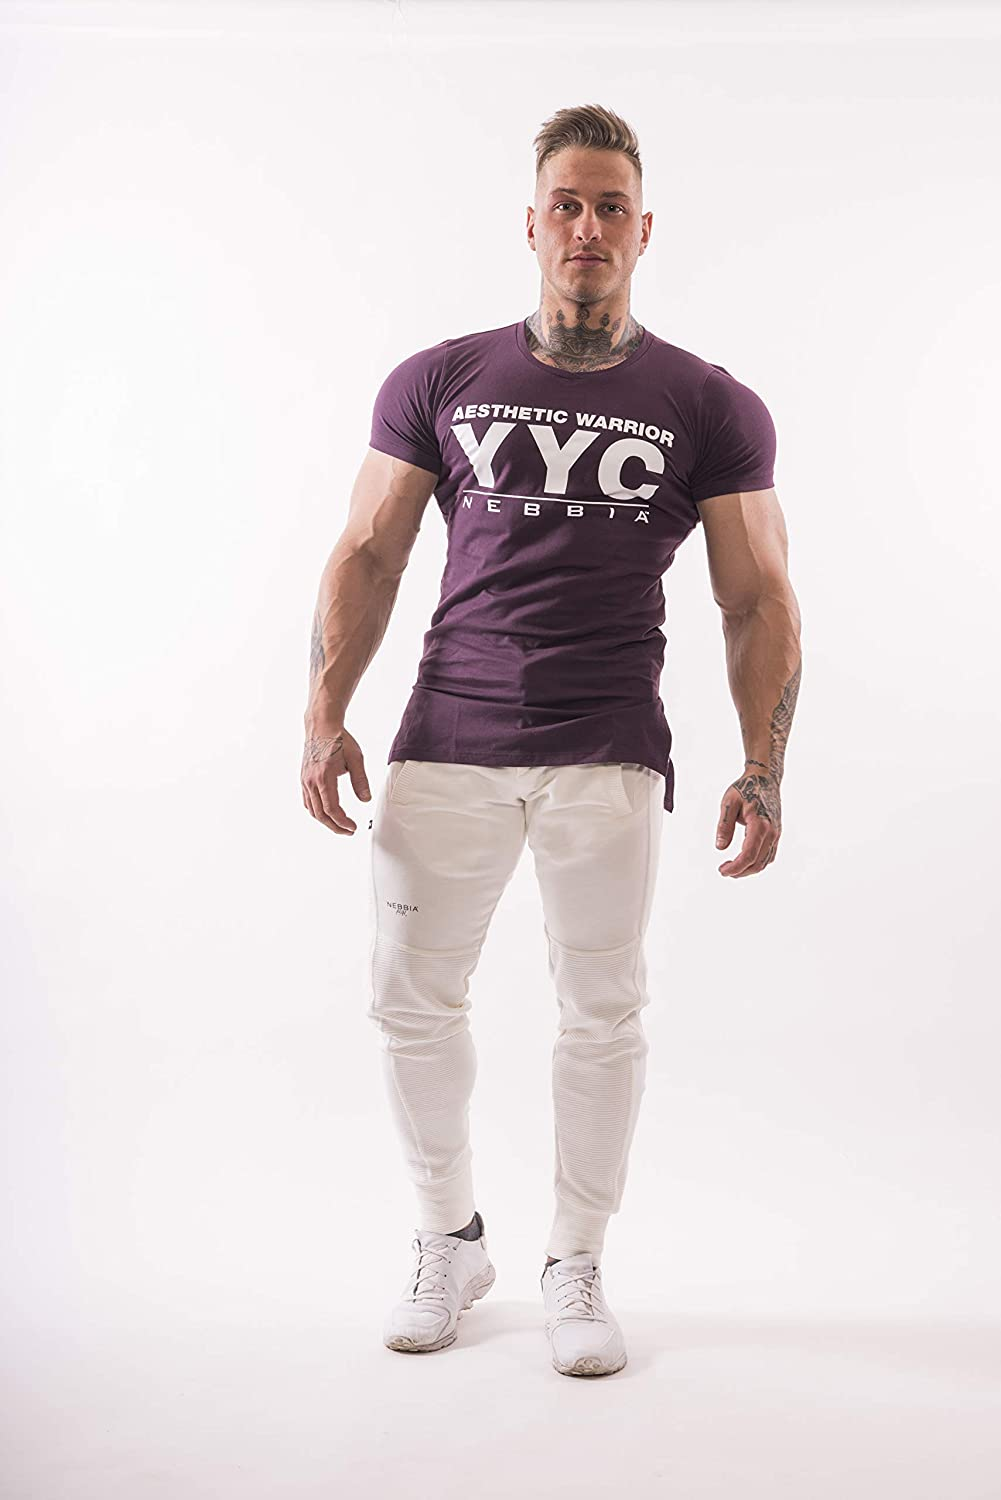 Sizes M Modern Extended Cut XXL Athletic Logo T-Shirt,Slim fit V Neck 3 Colors NEBBIA highlighting Figure Nice to Touch